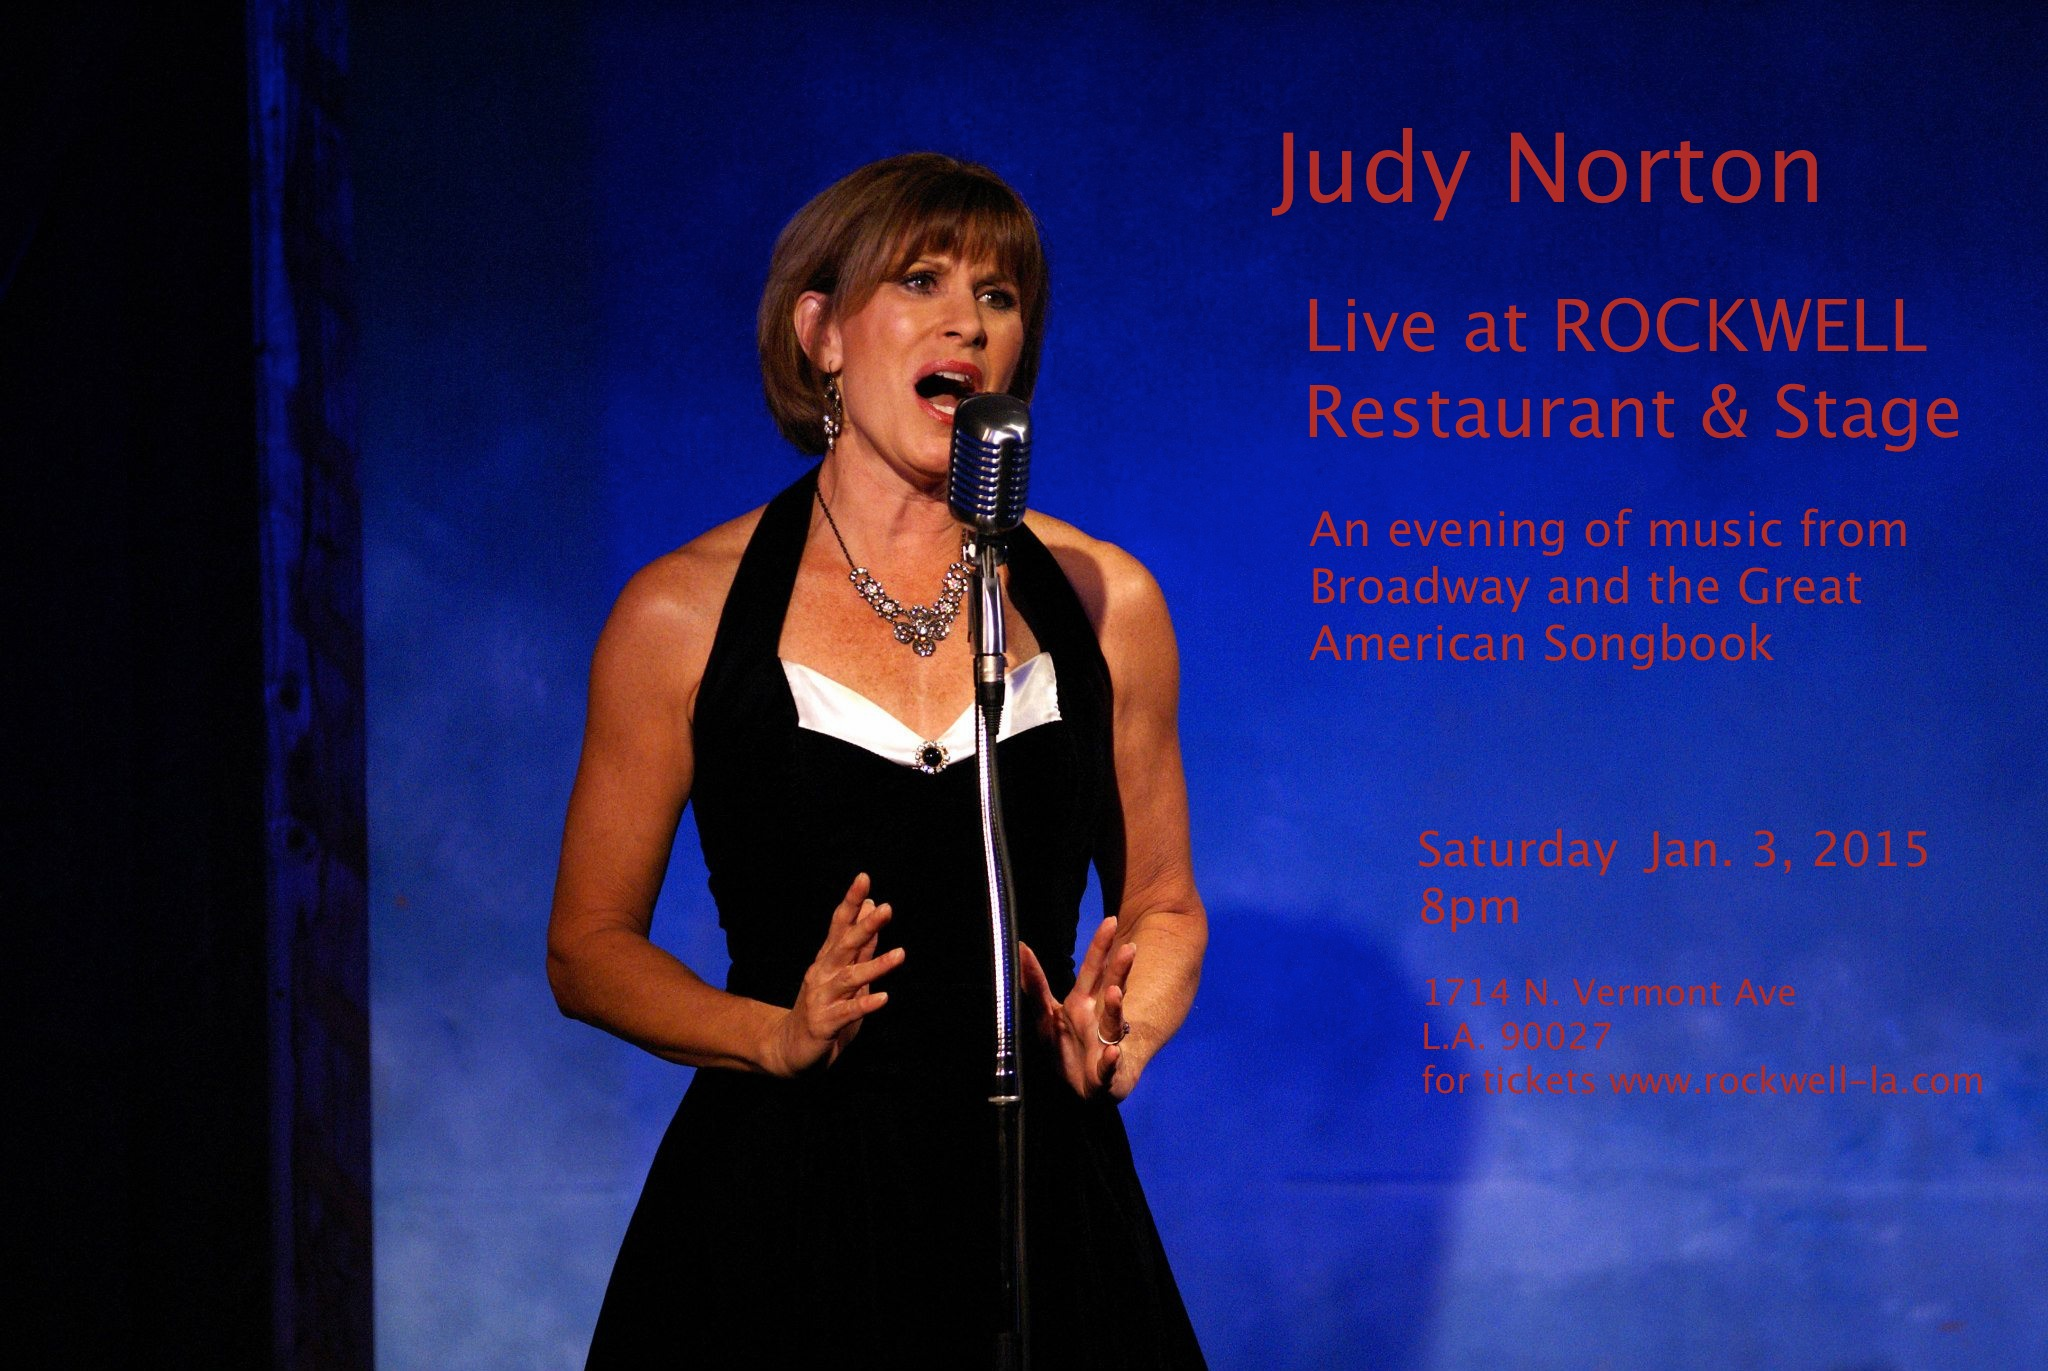 Judy Norton to Headline at Rockwell Club